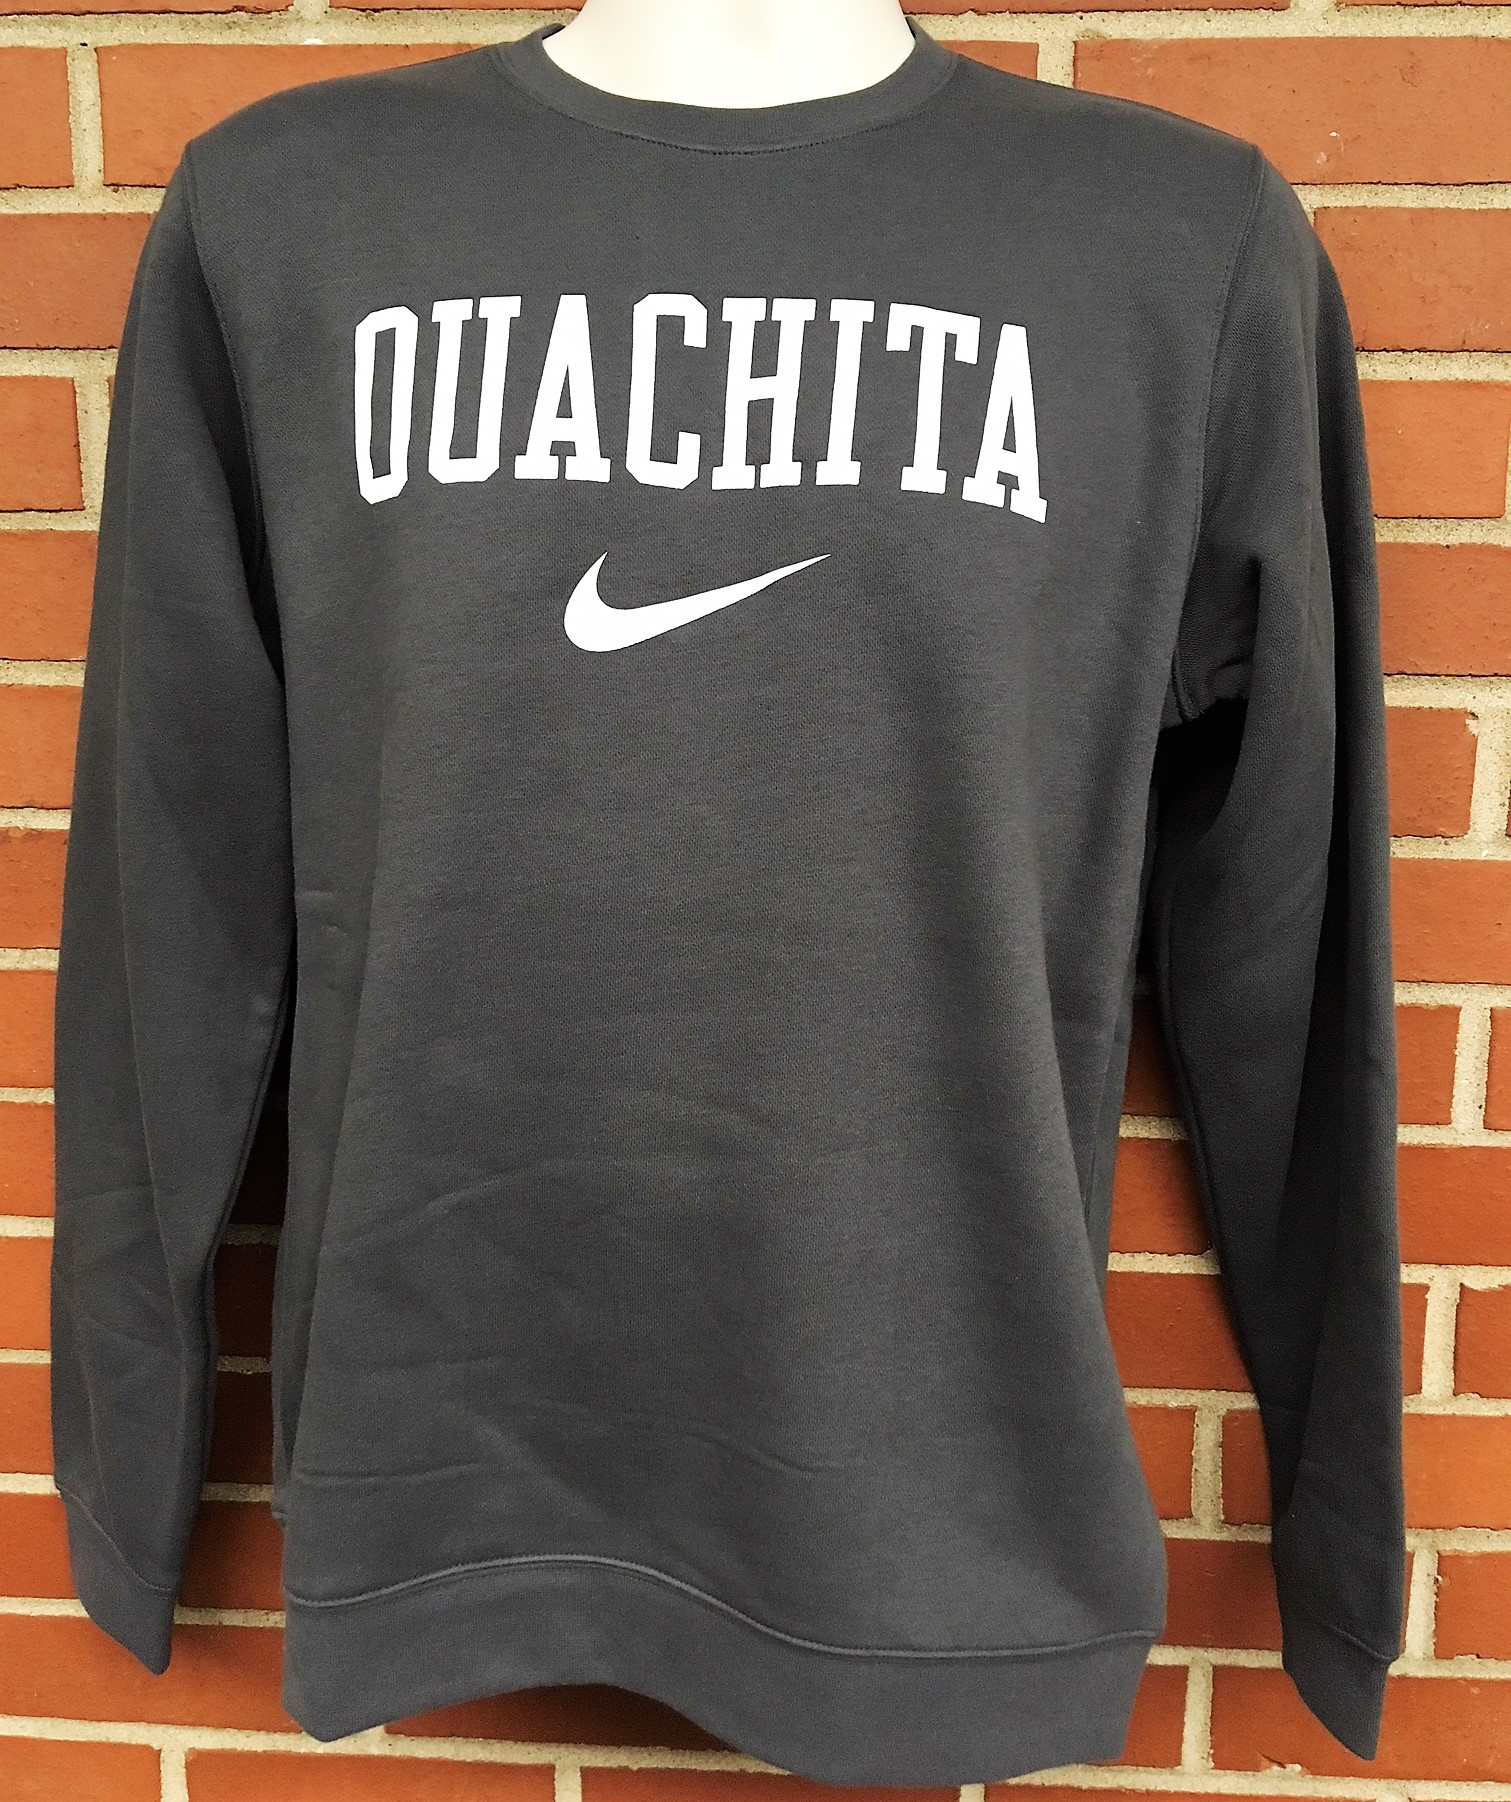 OUACHITA CLUB FLEECE CREW